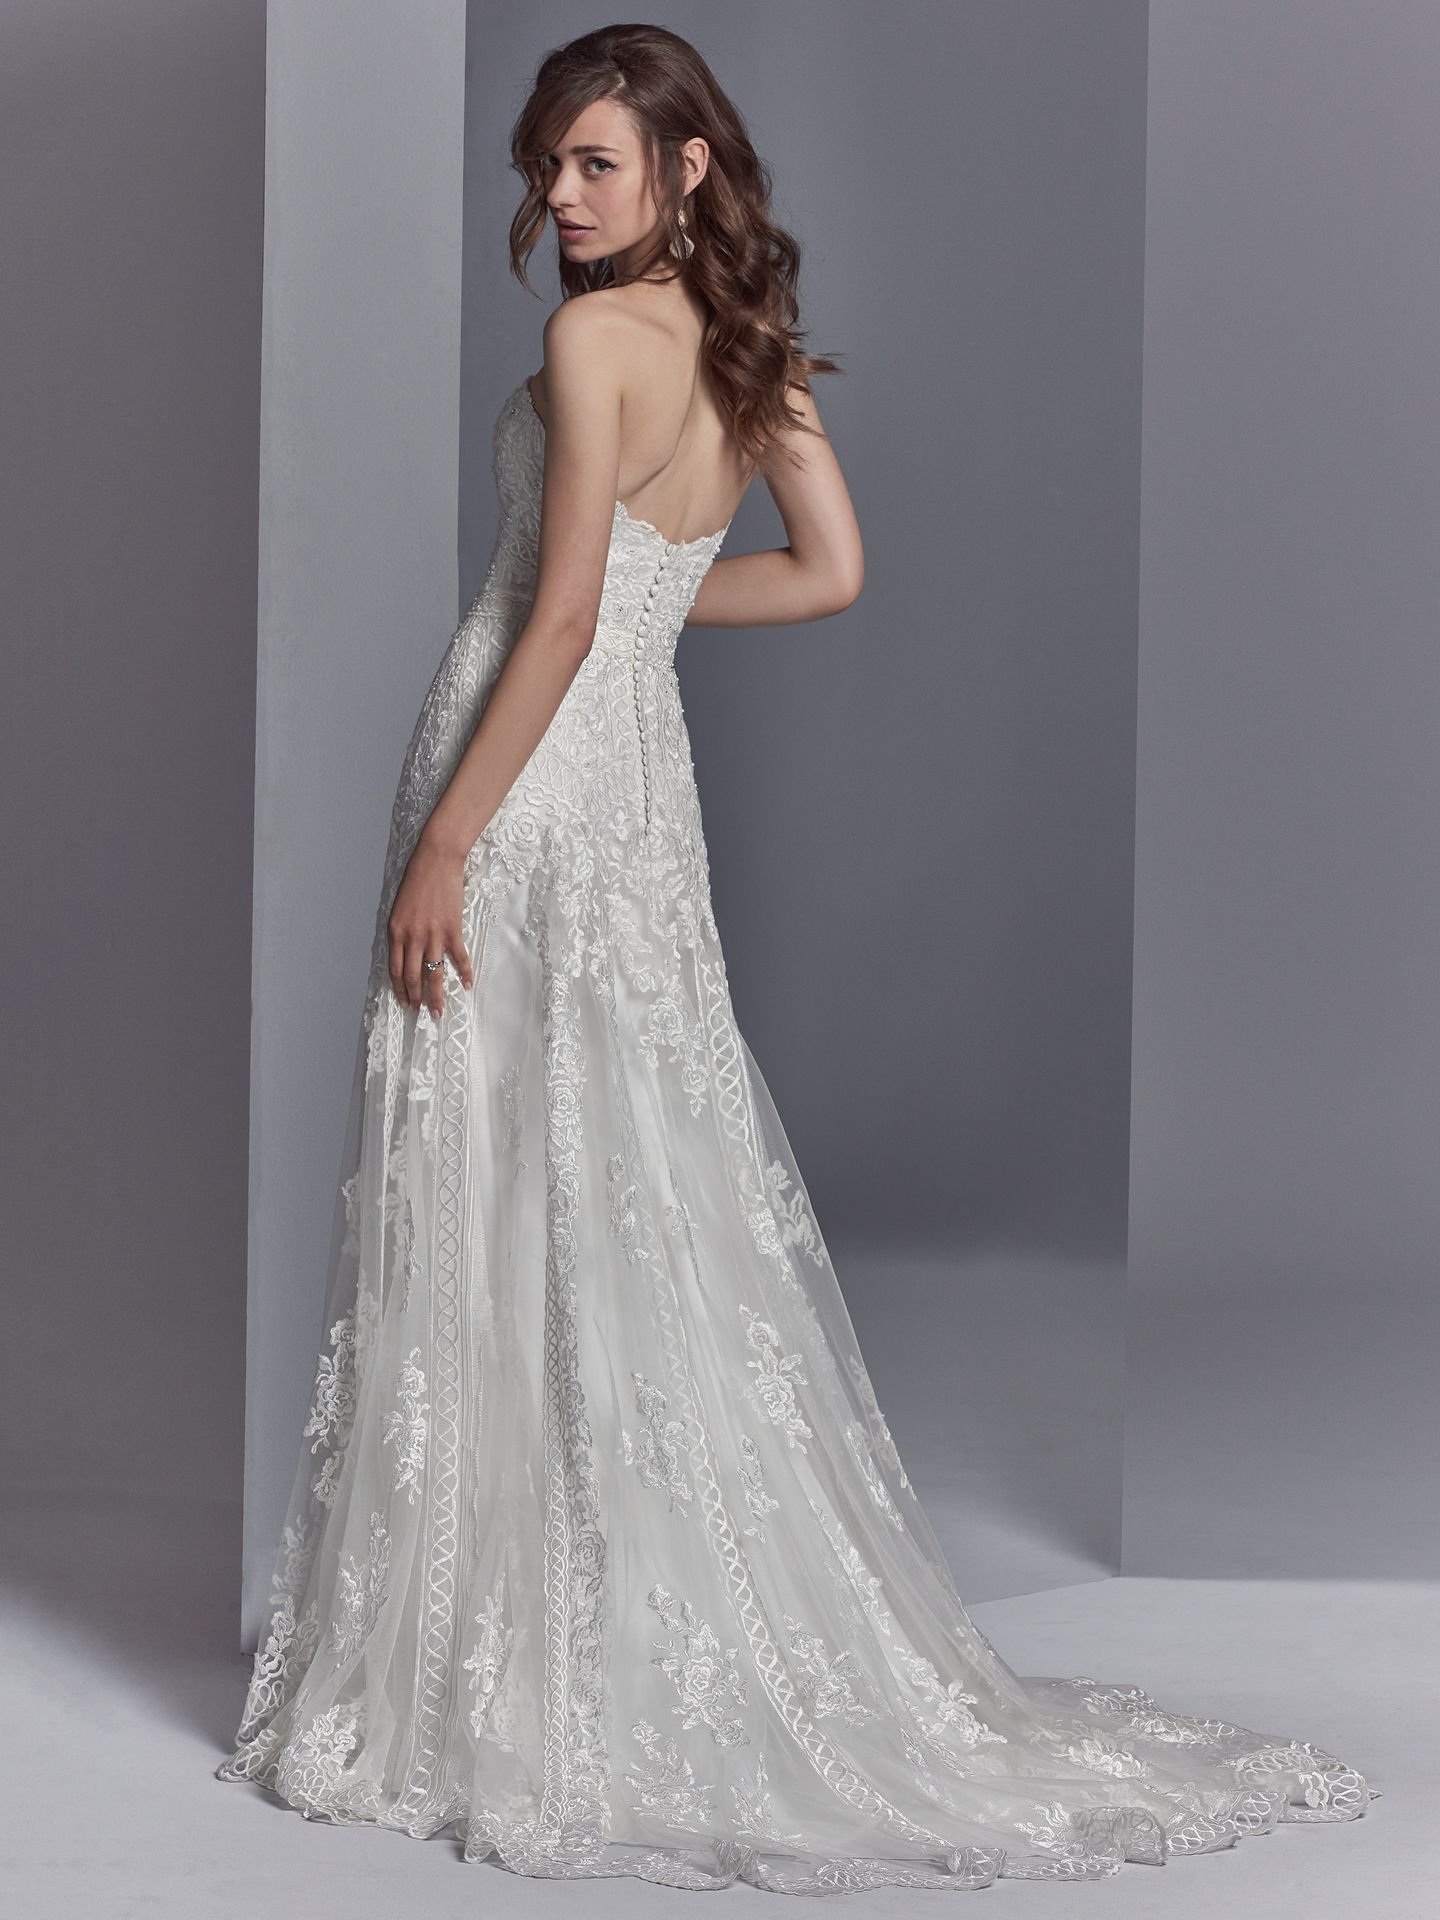 Skylar by Sottero and Midgley. Embroidered lace motifs accented in beading and Swarovski crystals cascade over tulle in this sheath wedding dress, completing the strapless sweetheart neckline and scallop lace hemline. 10 Top-Pinned Sottero and Midgley Gowns of 2017.